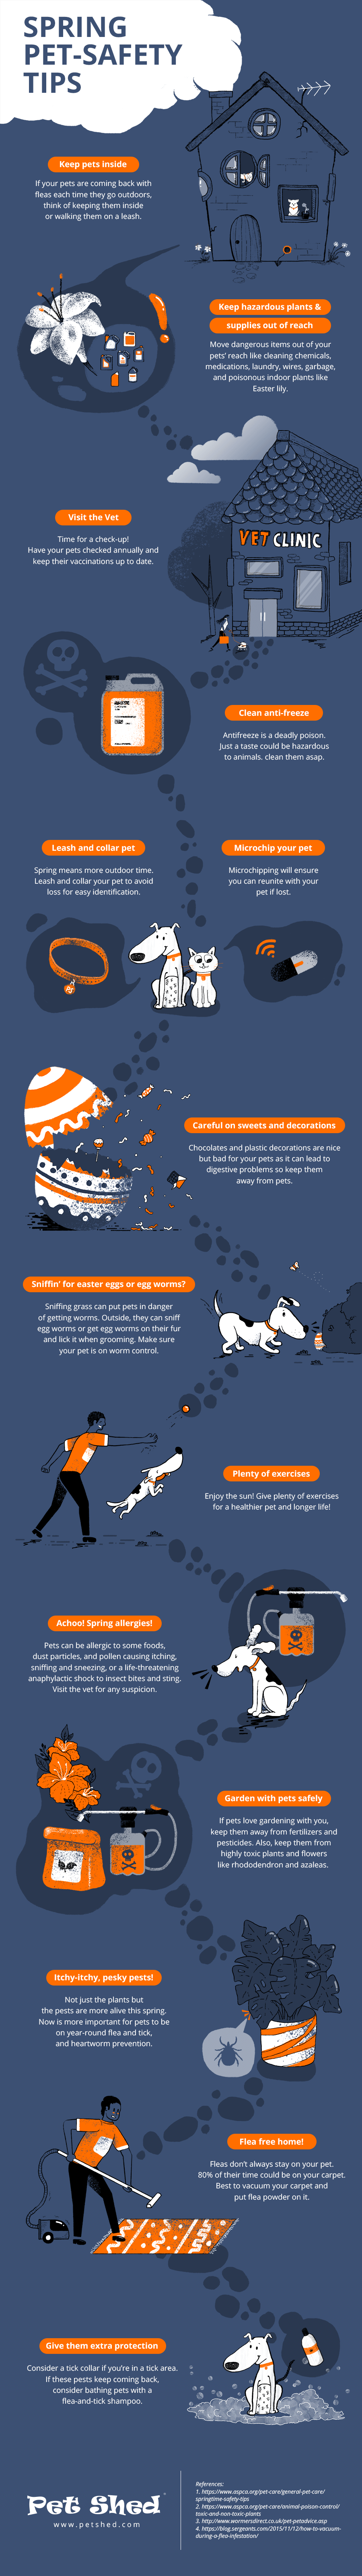 Pet-Safety Tips to Remember During Spring Season Infographic